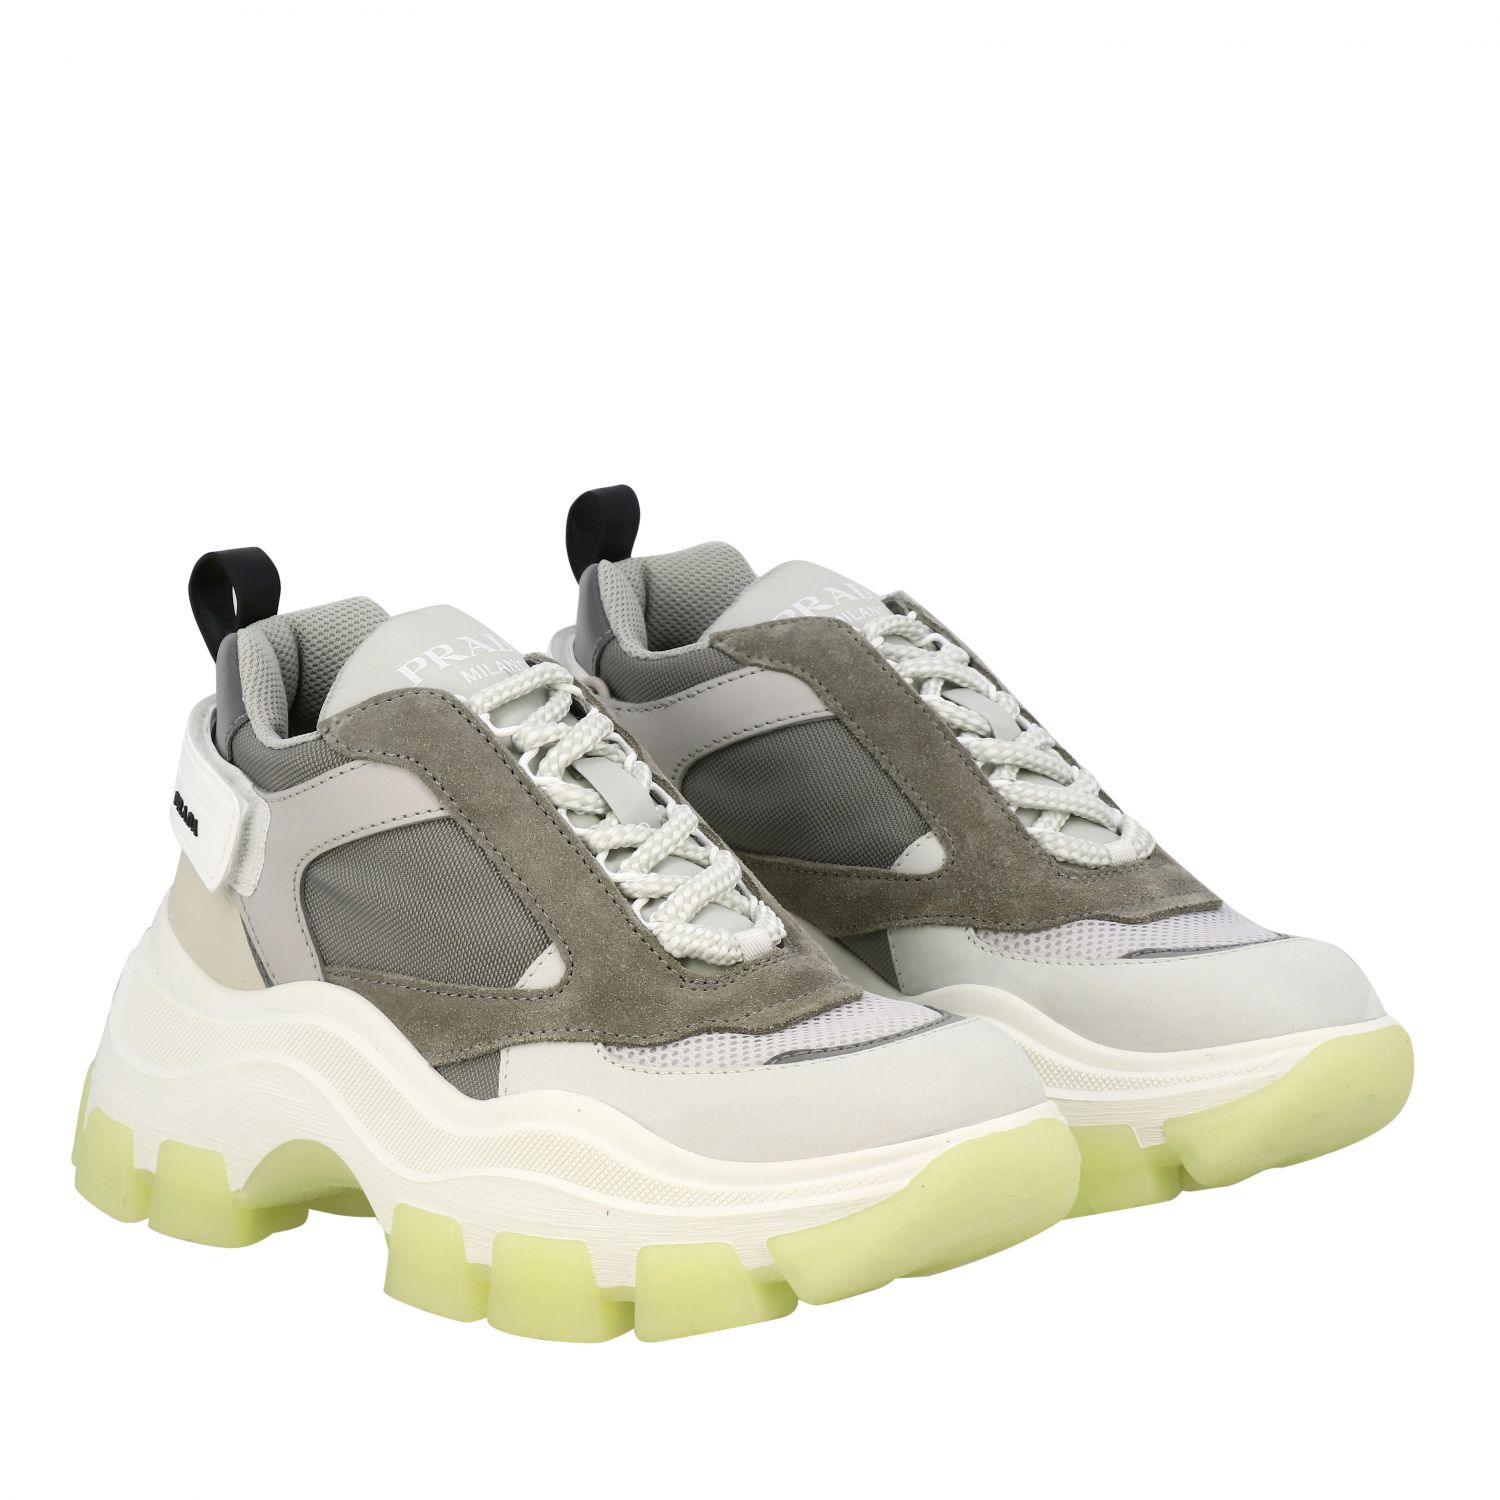 chunky Prada sneakers in suede leather